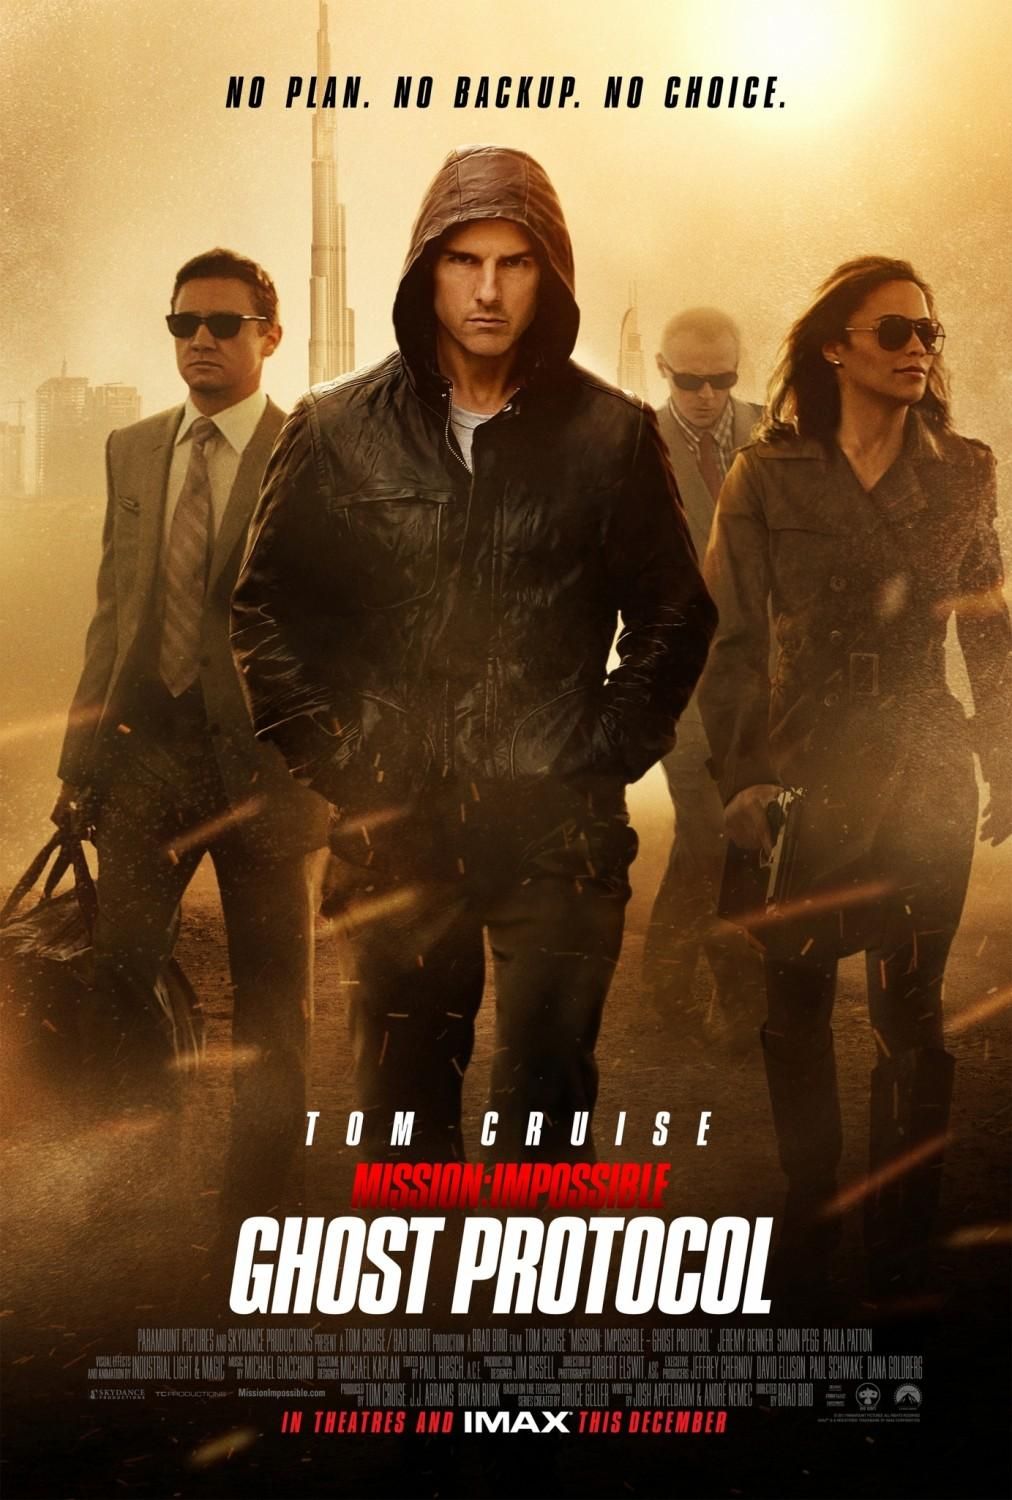 Mission%20Impossible%20%E2%80%93%20Ghost%20Protocol%202011.3 1 دانلود فیلم Mission Impossible: Ghost Protocol 2011